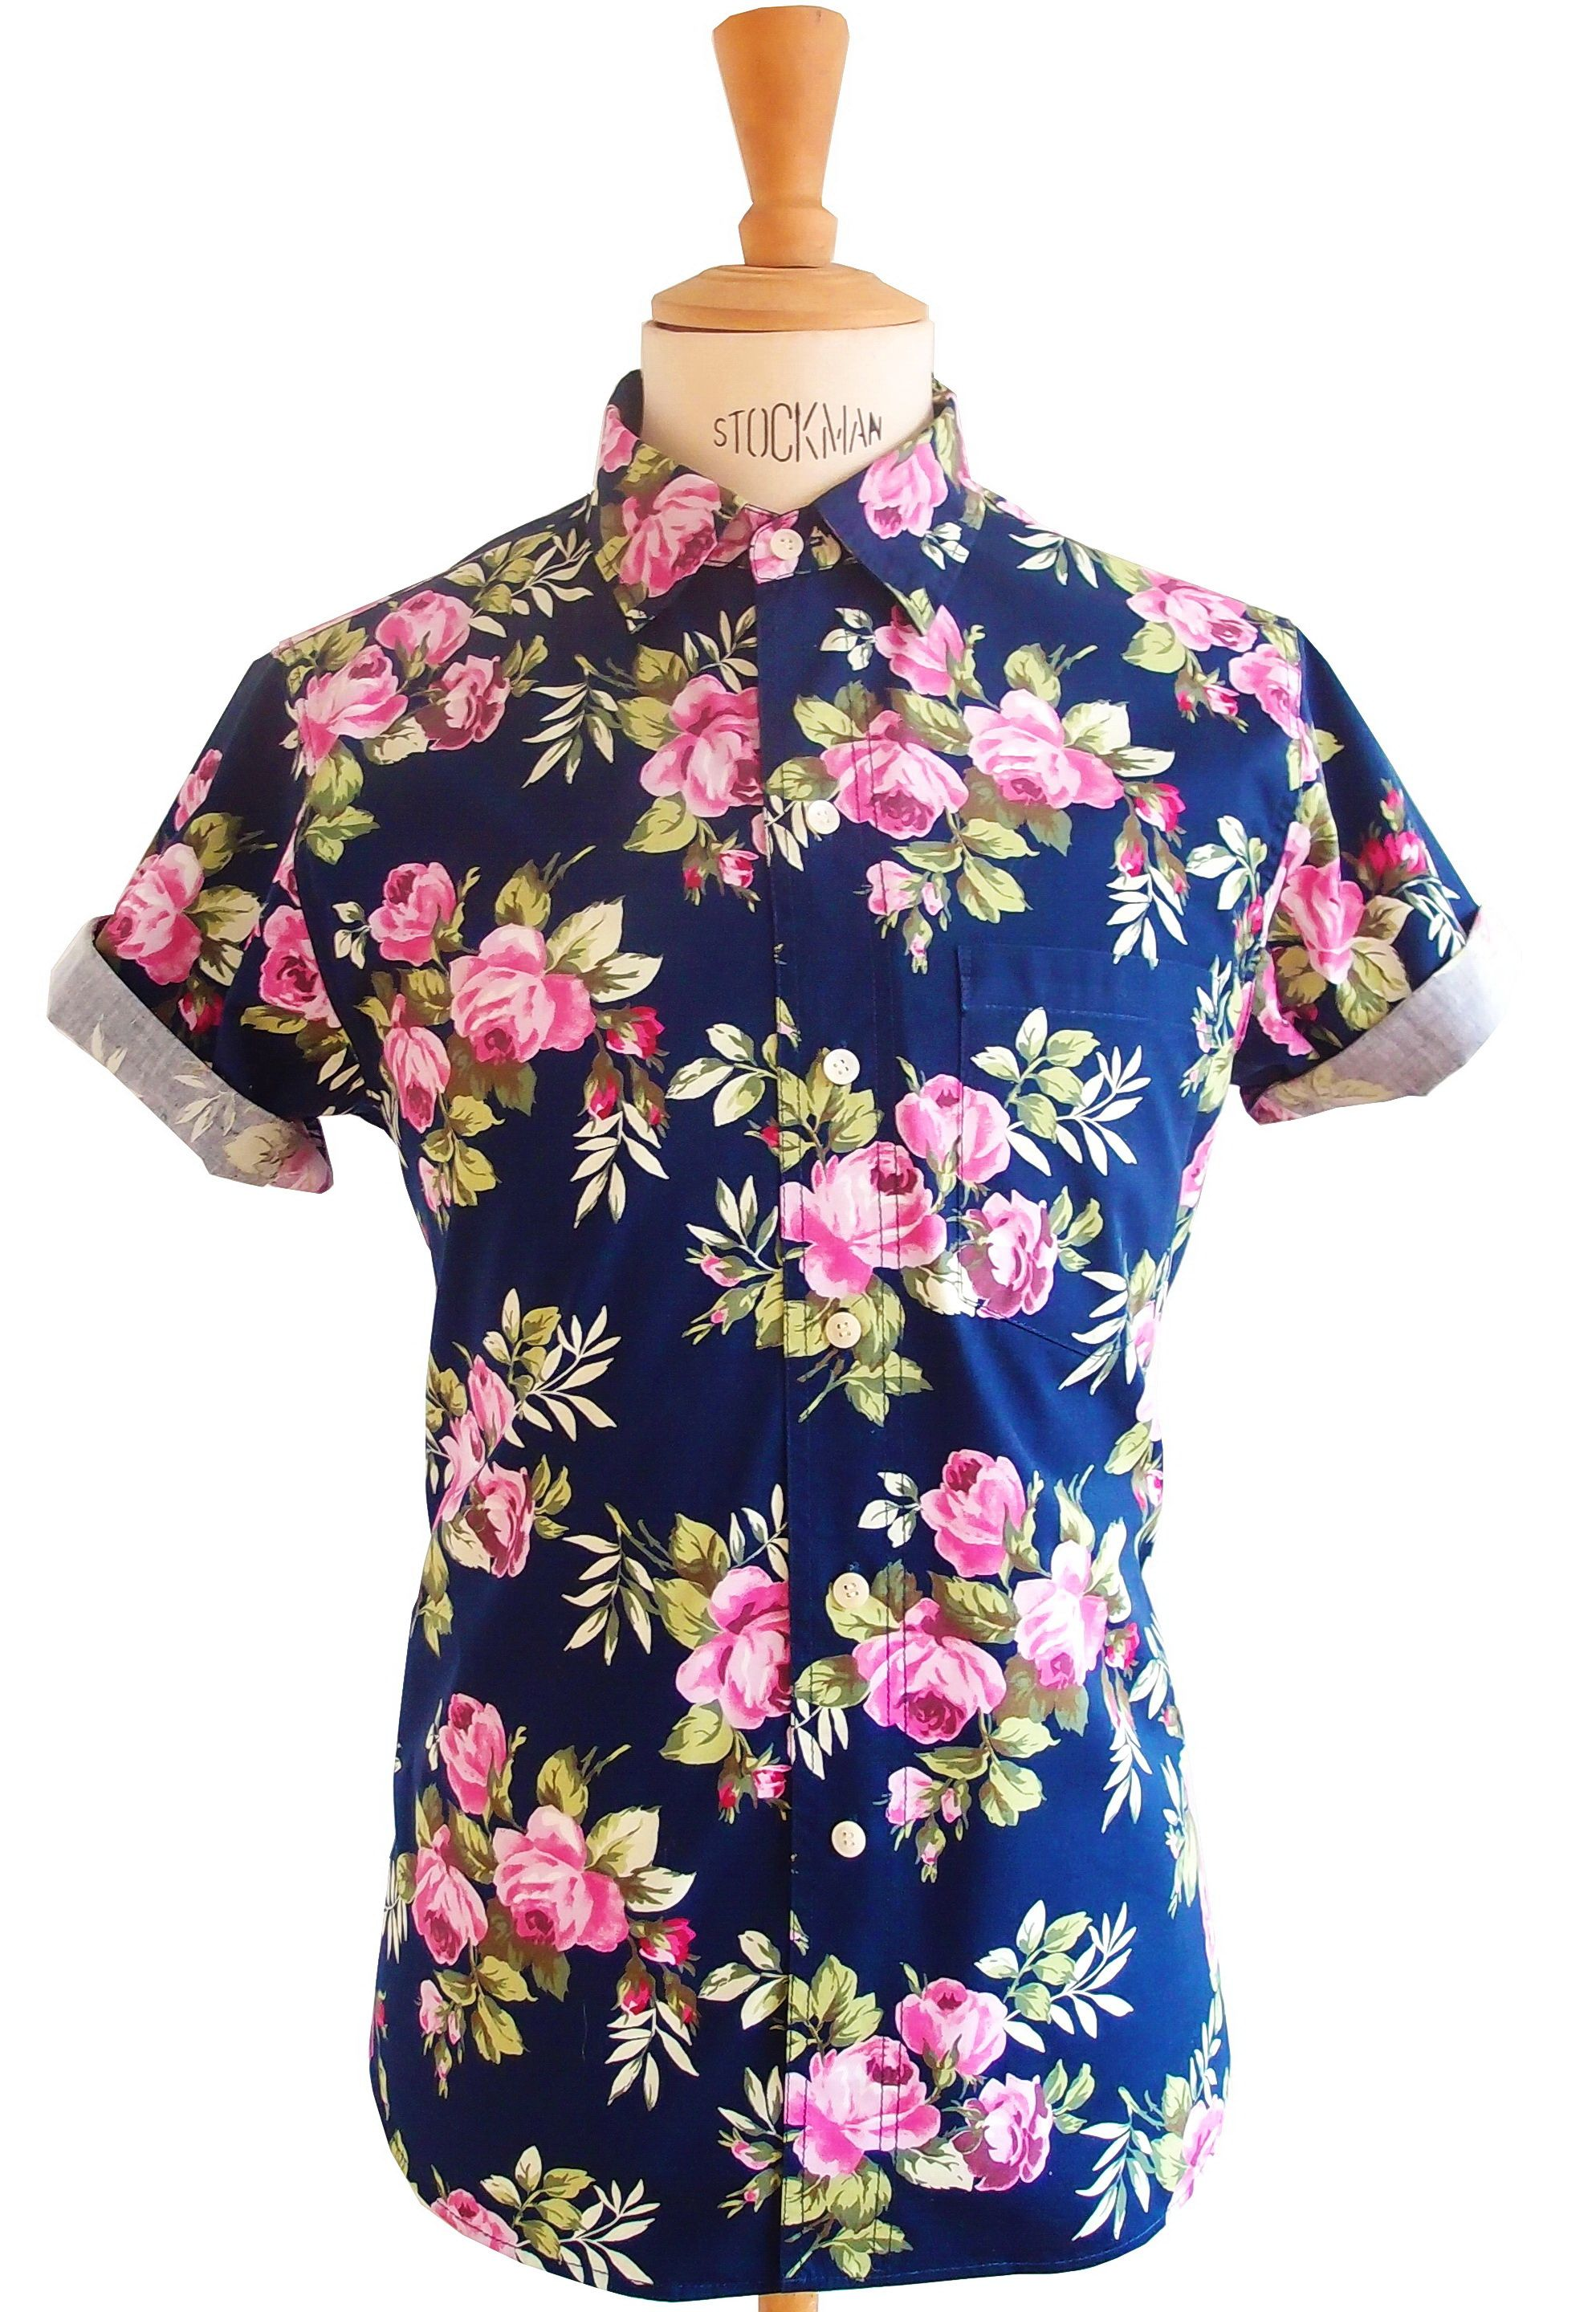 Watch 20 Floral Shirt Outfits For Men video